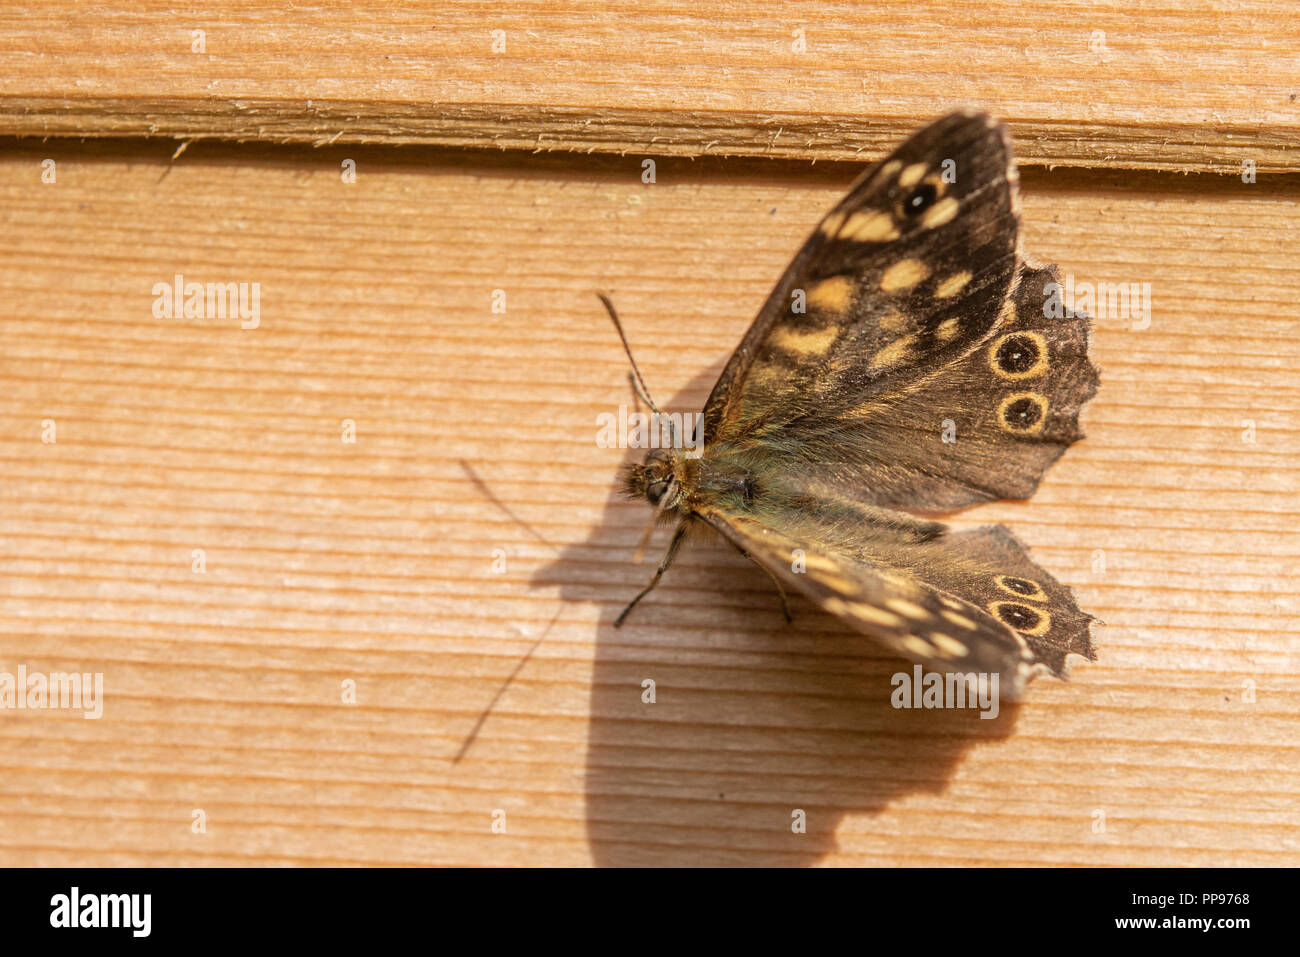 Close up of a Speckled Wood butterfly resting with its wings open on side of shed. - Stock Image